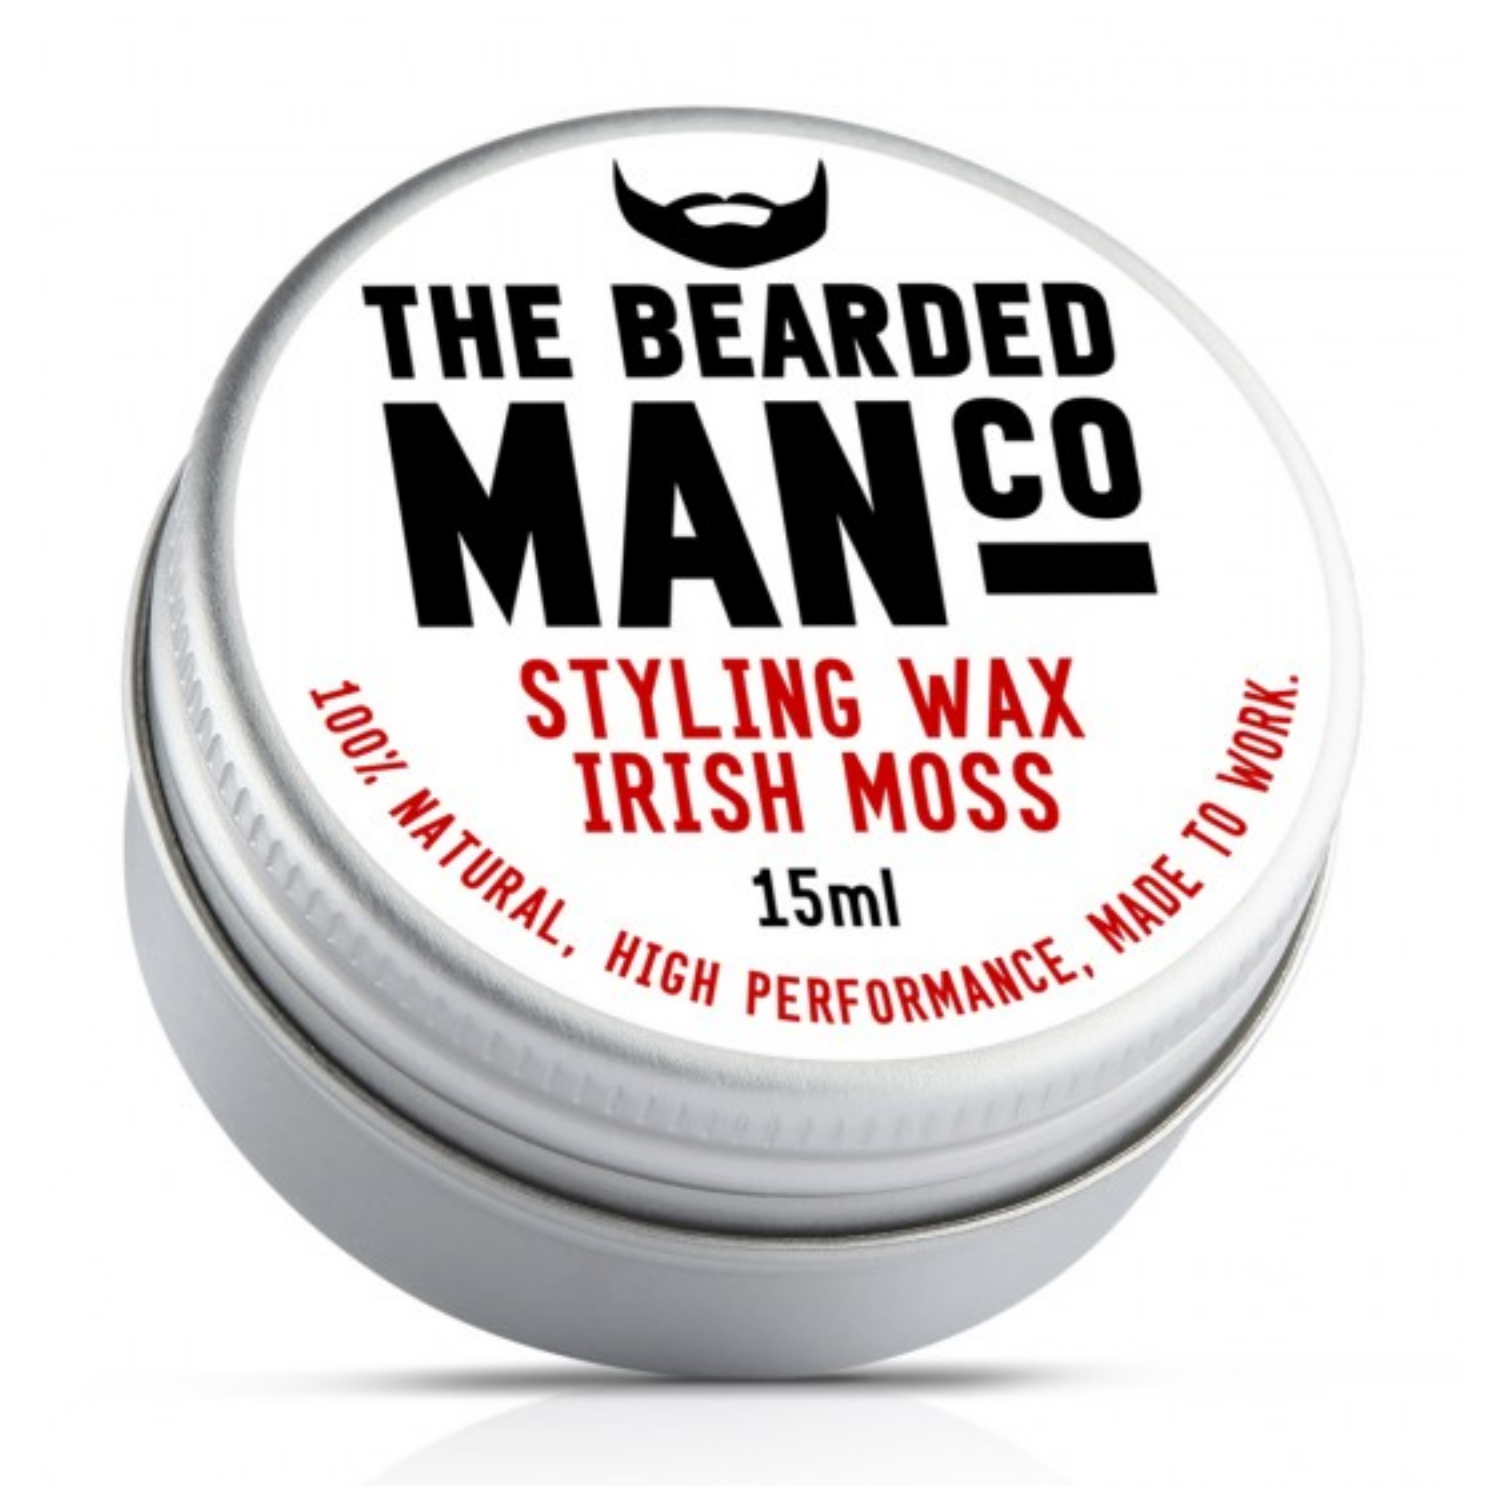 The Bearded Man Co. szakáll és bajuszwax - Irish Moss